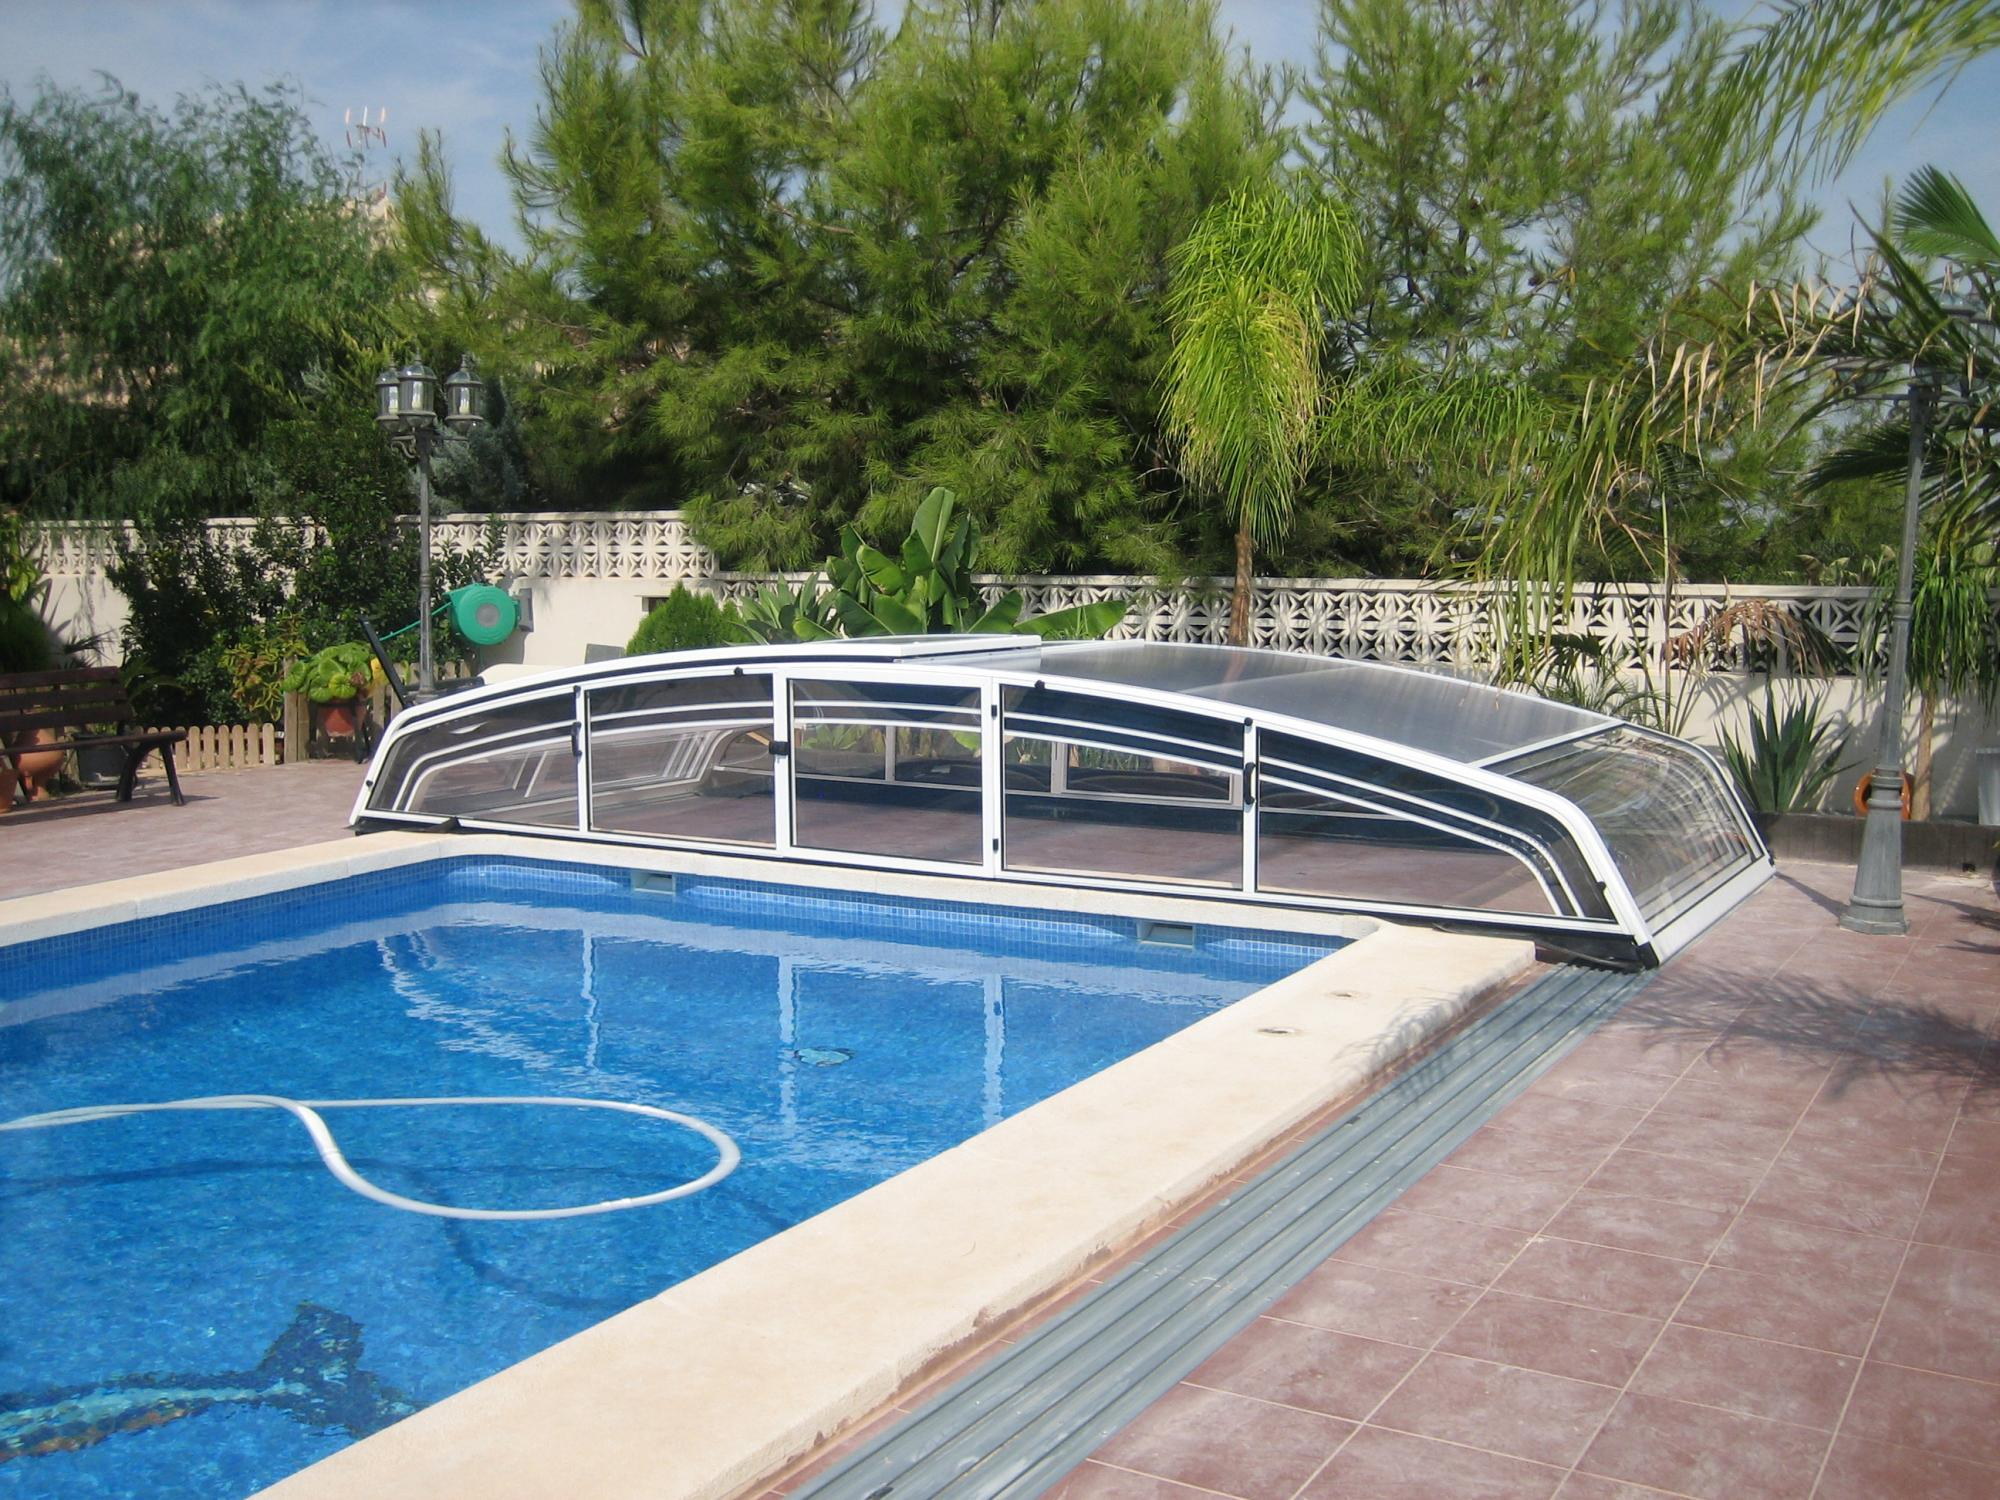 Abri piscine vmini abris alu alu par apc for Abri piscine telescopique sans rail